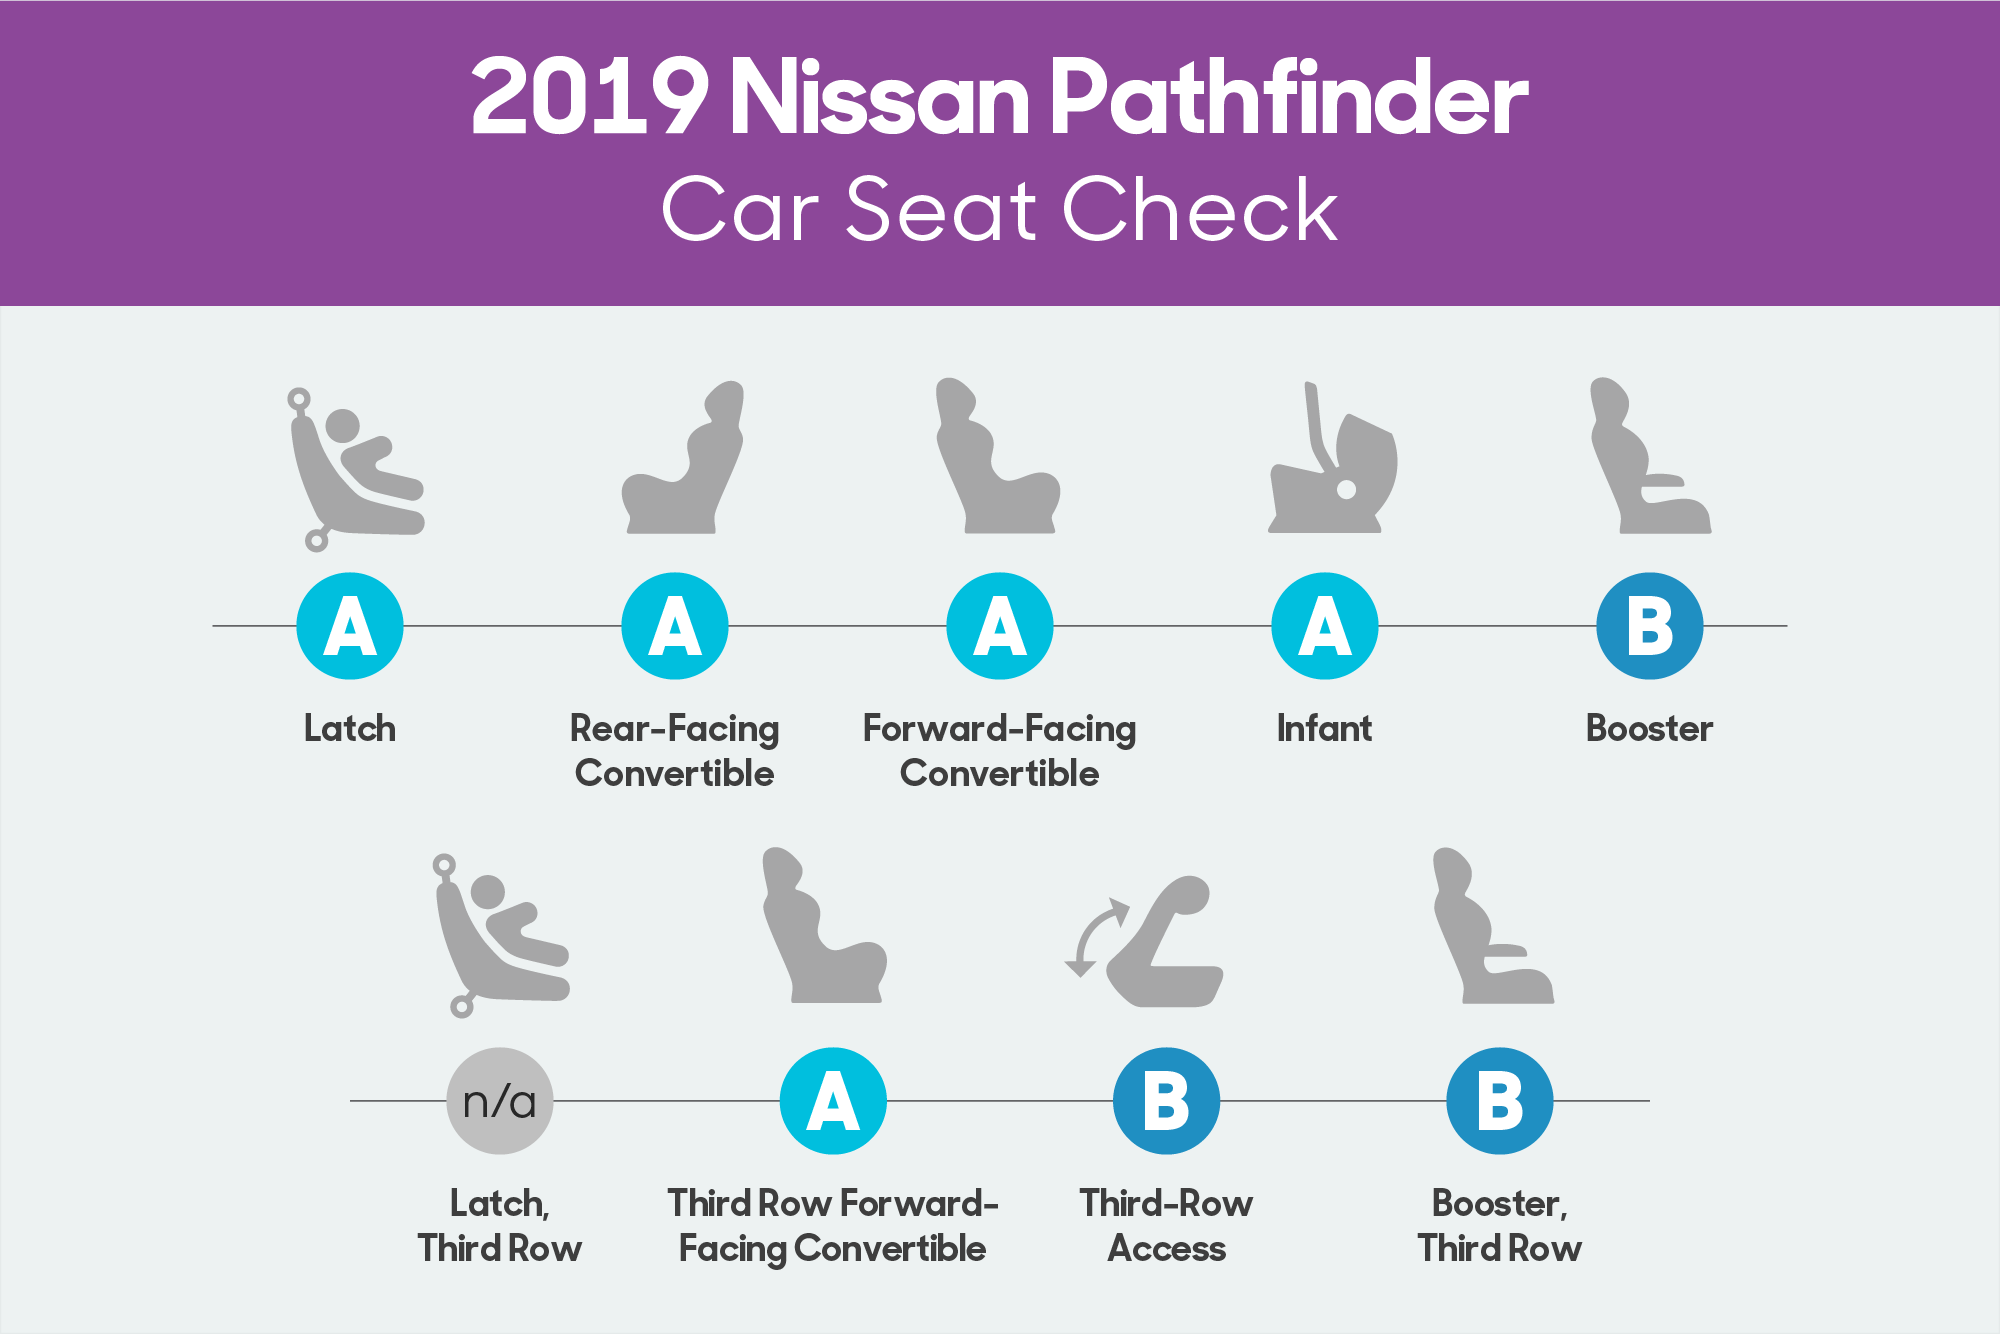 How Do Car Seats Fit in a 2019 Nissan Pathfinder?